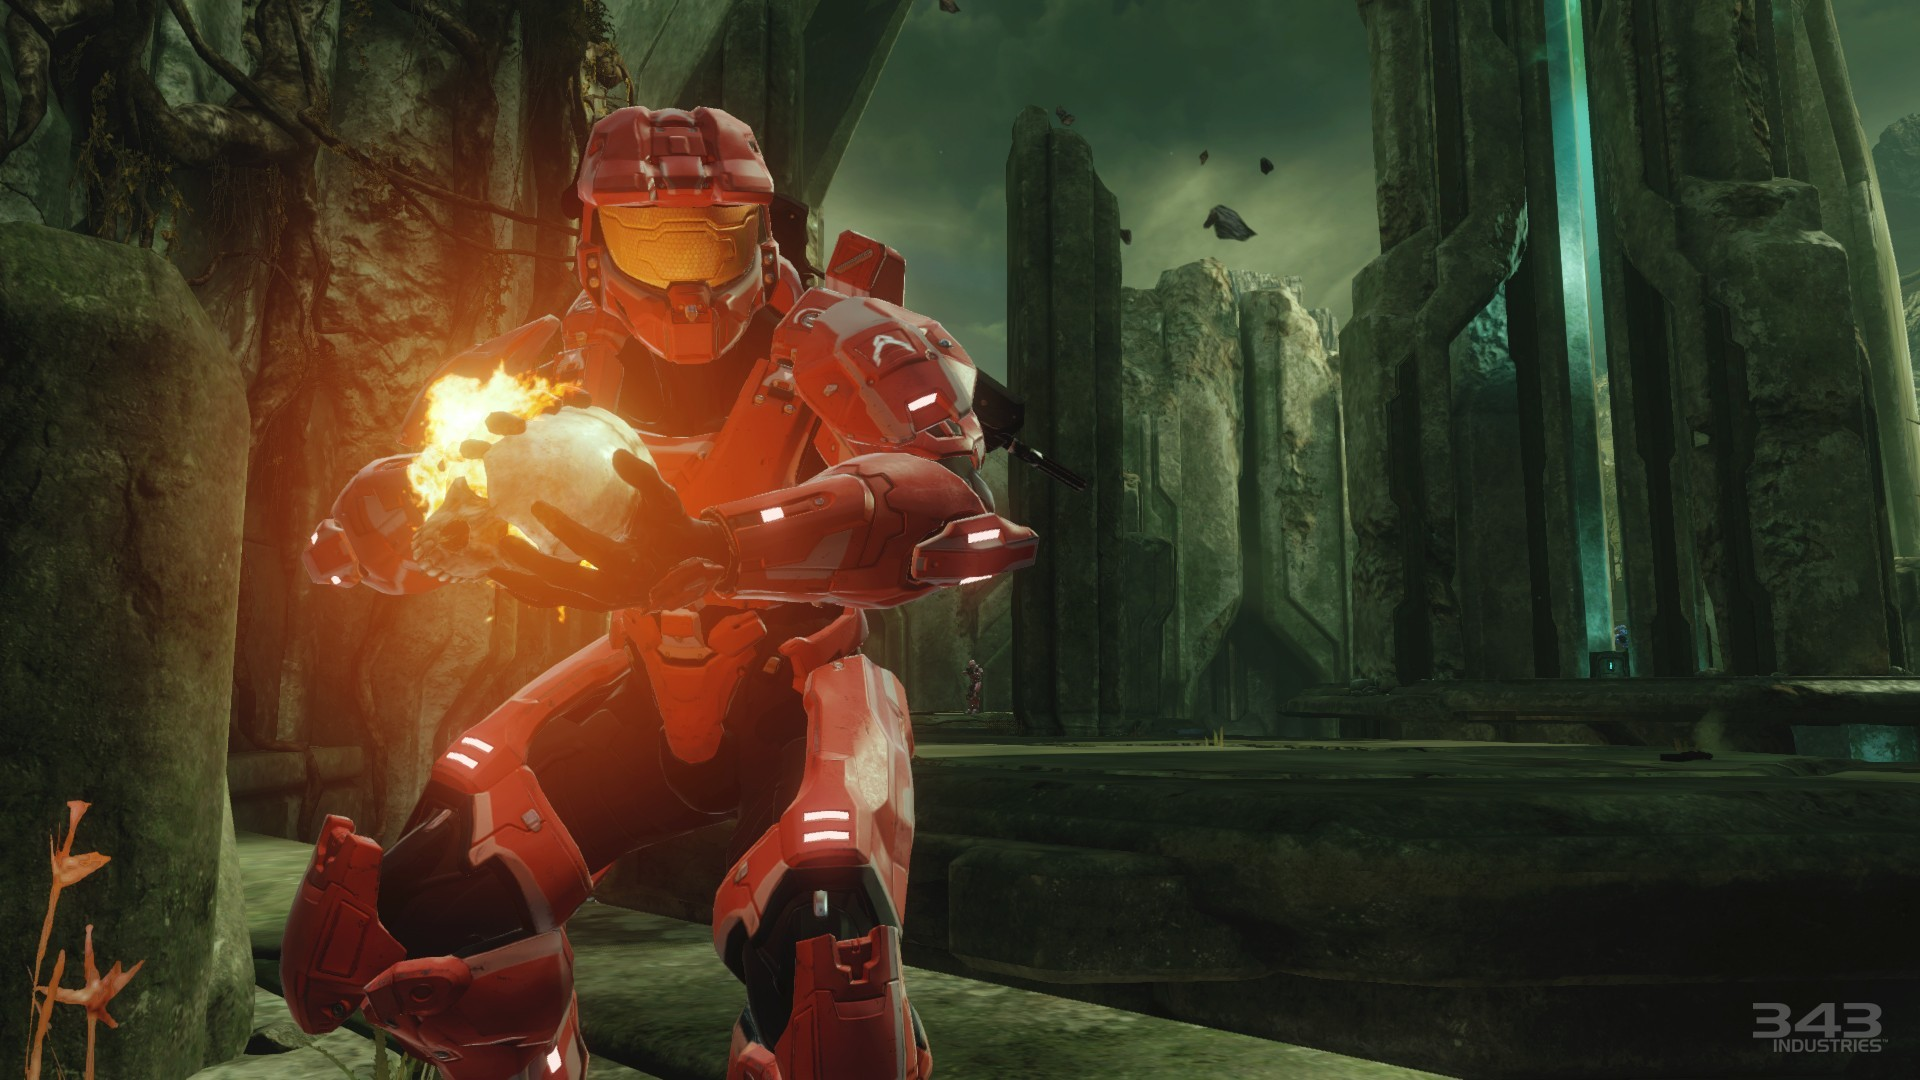 Halo matchmaking news